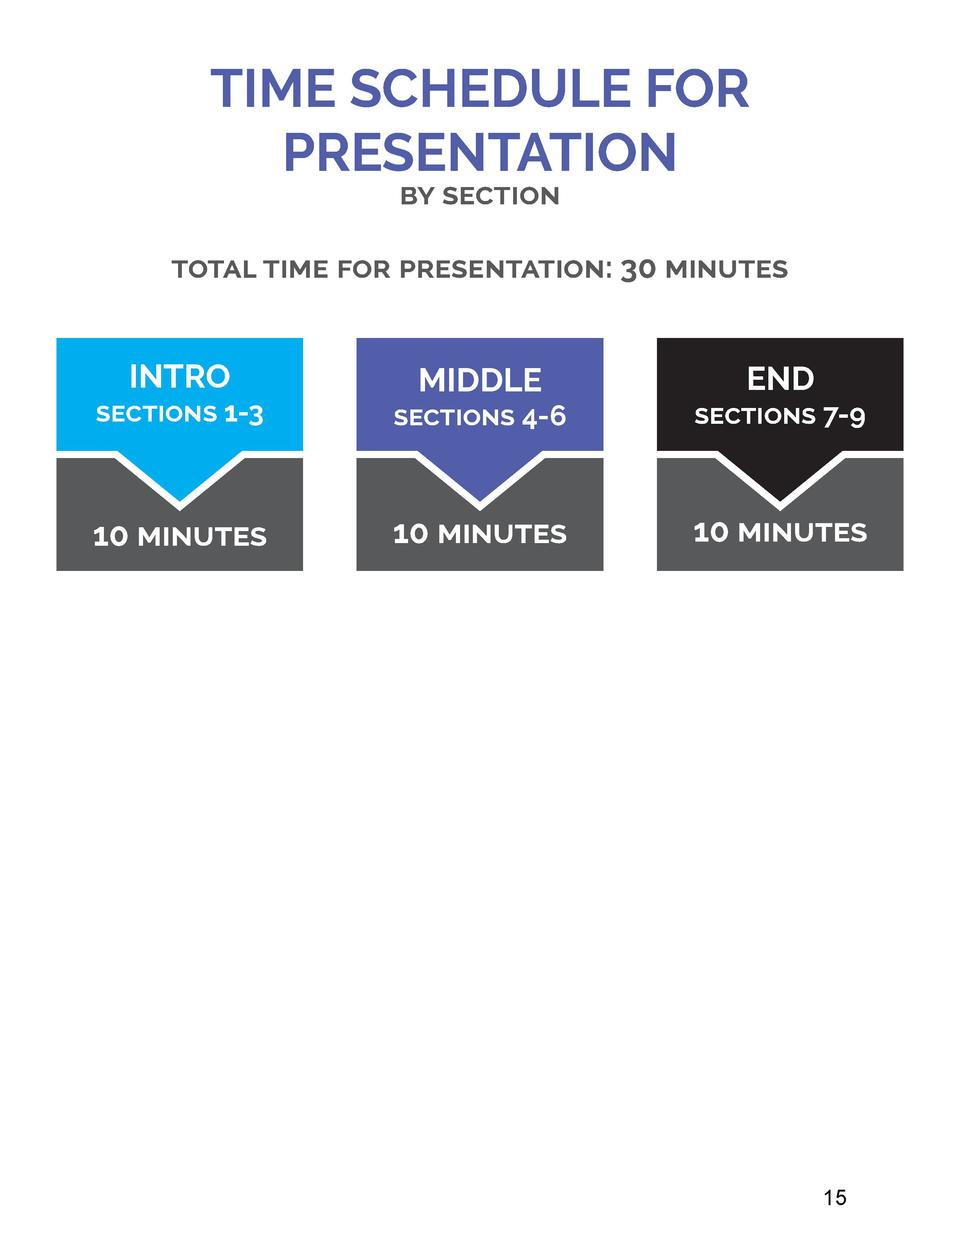 TIME SCHEDULE FOR PRESENTATION by section  total time for presentation  30 minutes  INTRO  MIDDLE  END  sections 1-3  sect...